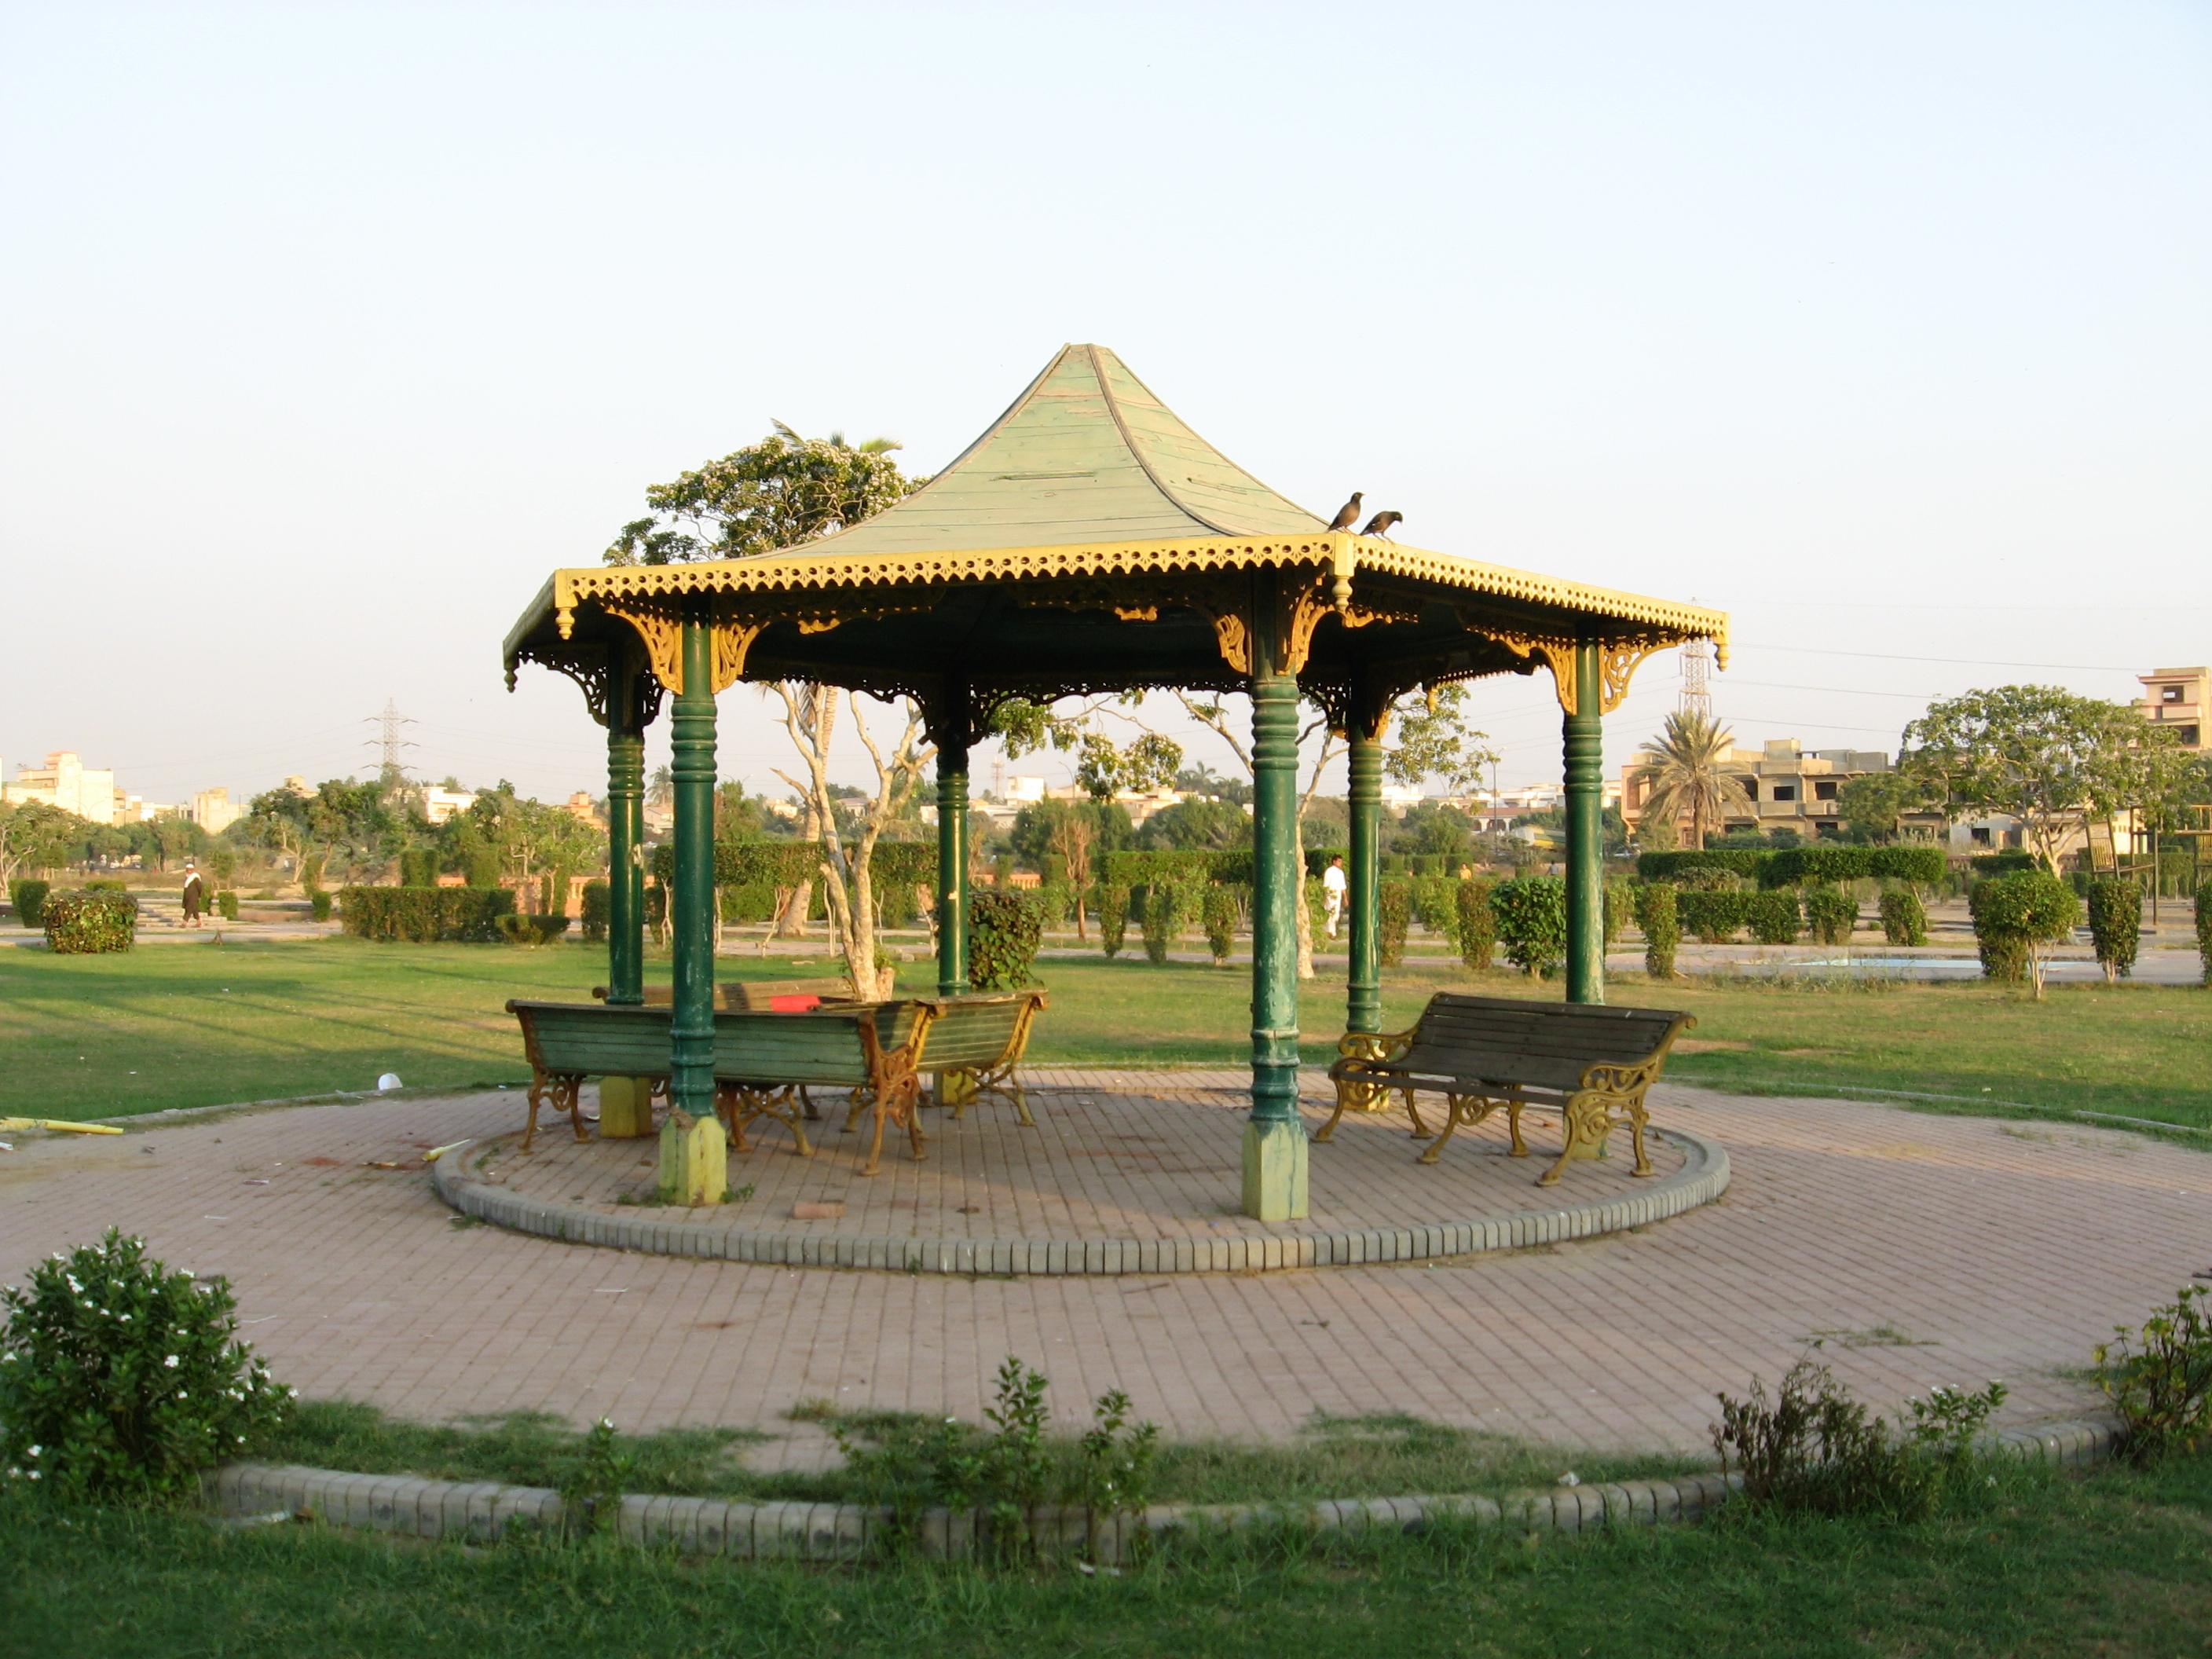 THE 15 BEST Things to Do in Karachi - (with Photos) - TripAdvisor